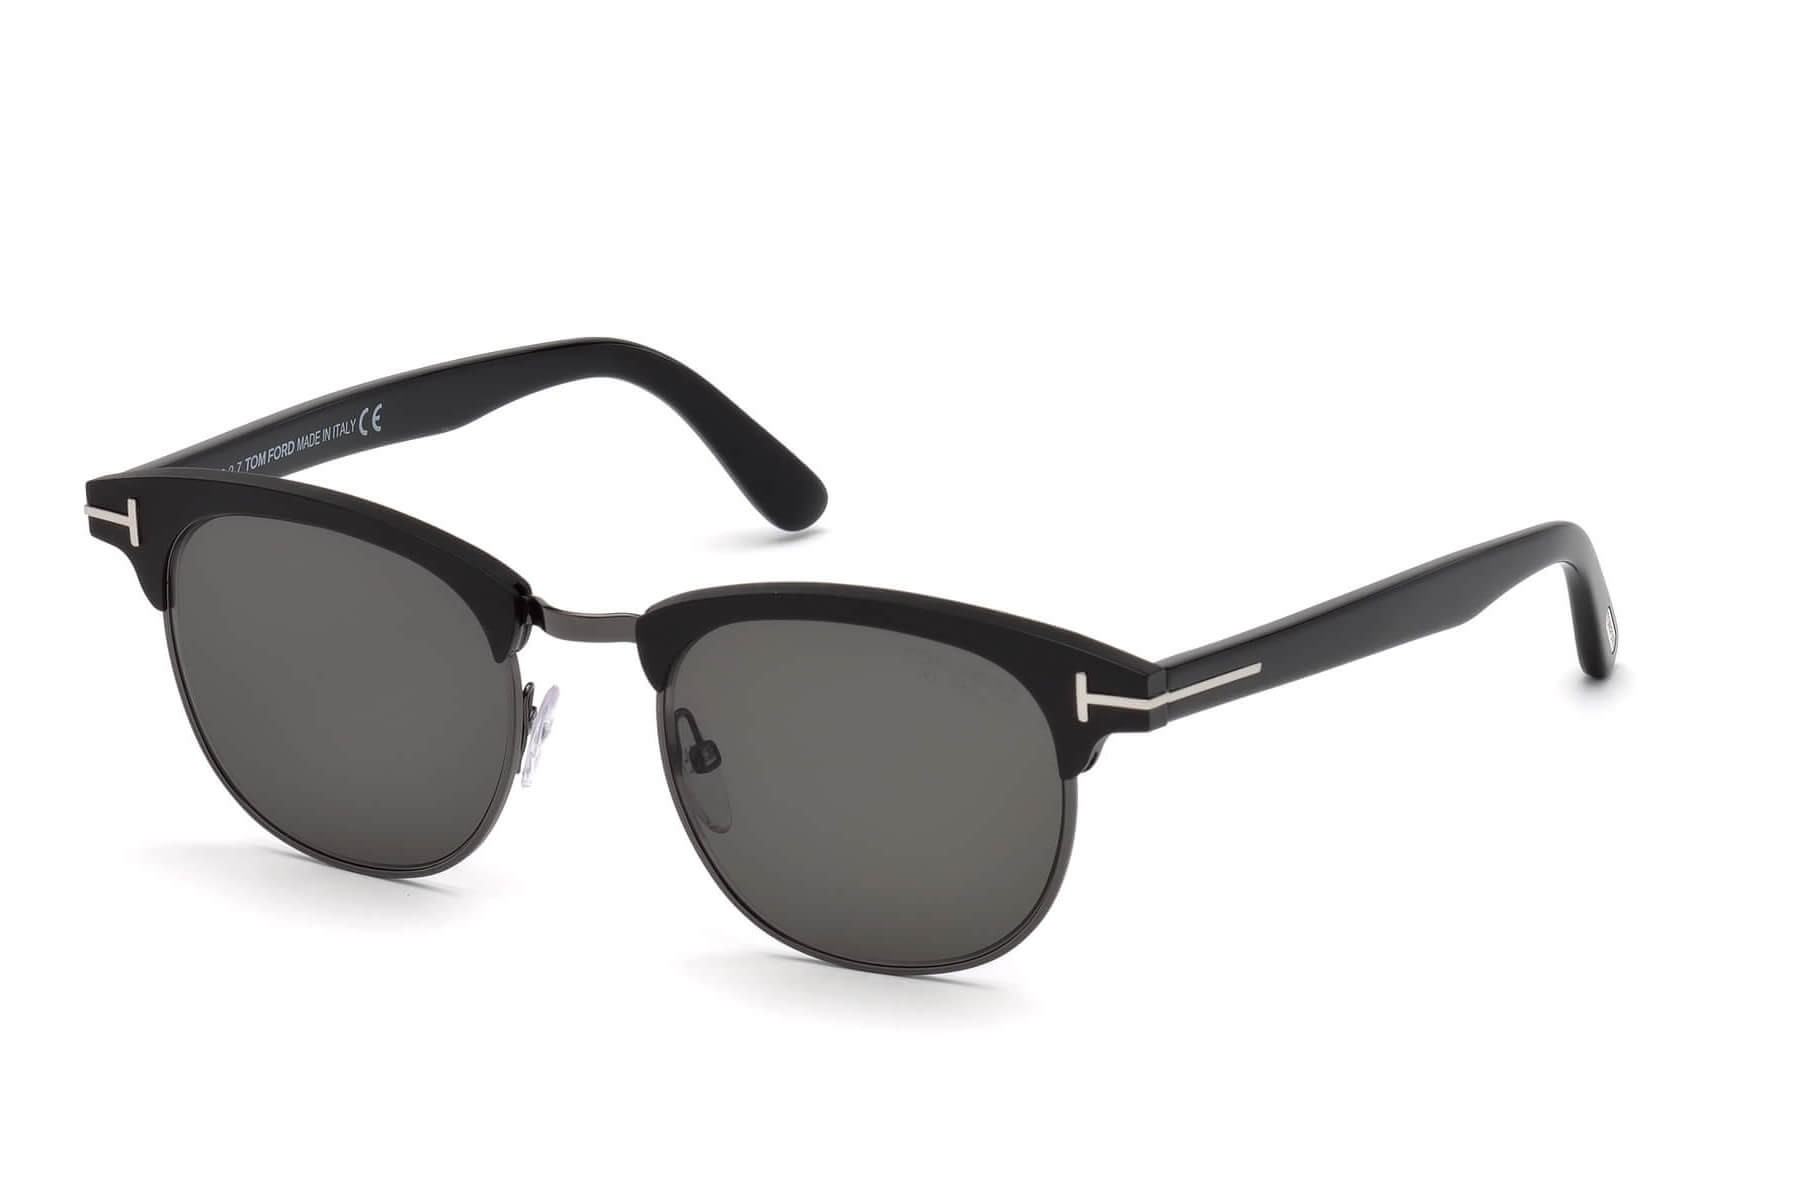 70594b43d11 Tom Ford FT0623 LAURENT-02 02D Matte Black - Smoke Polarized ...